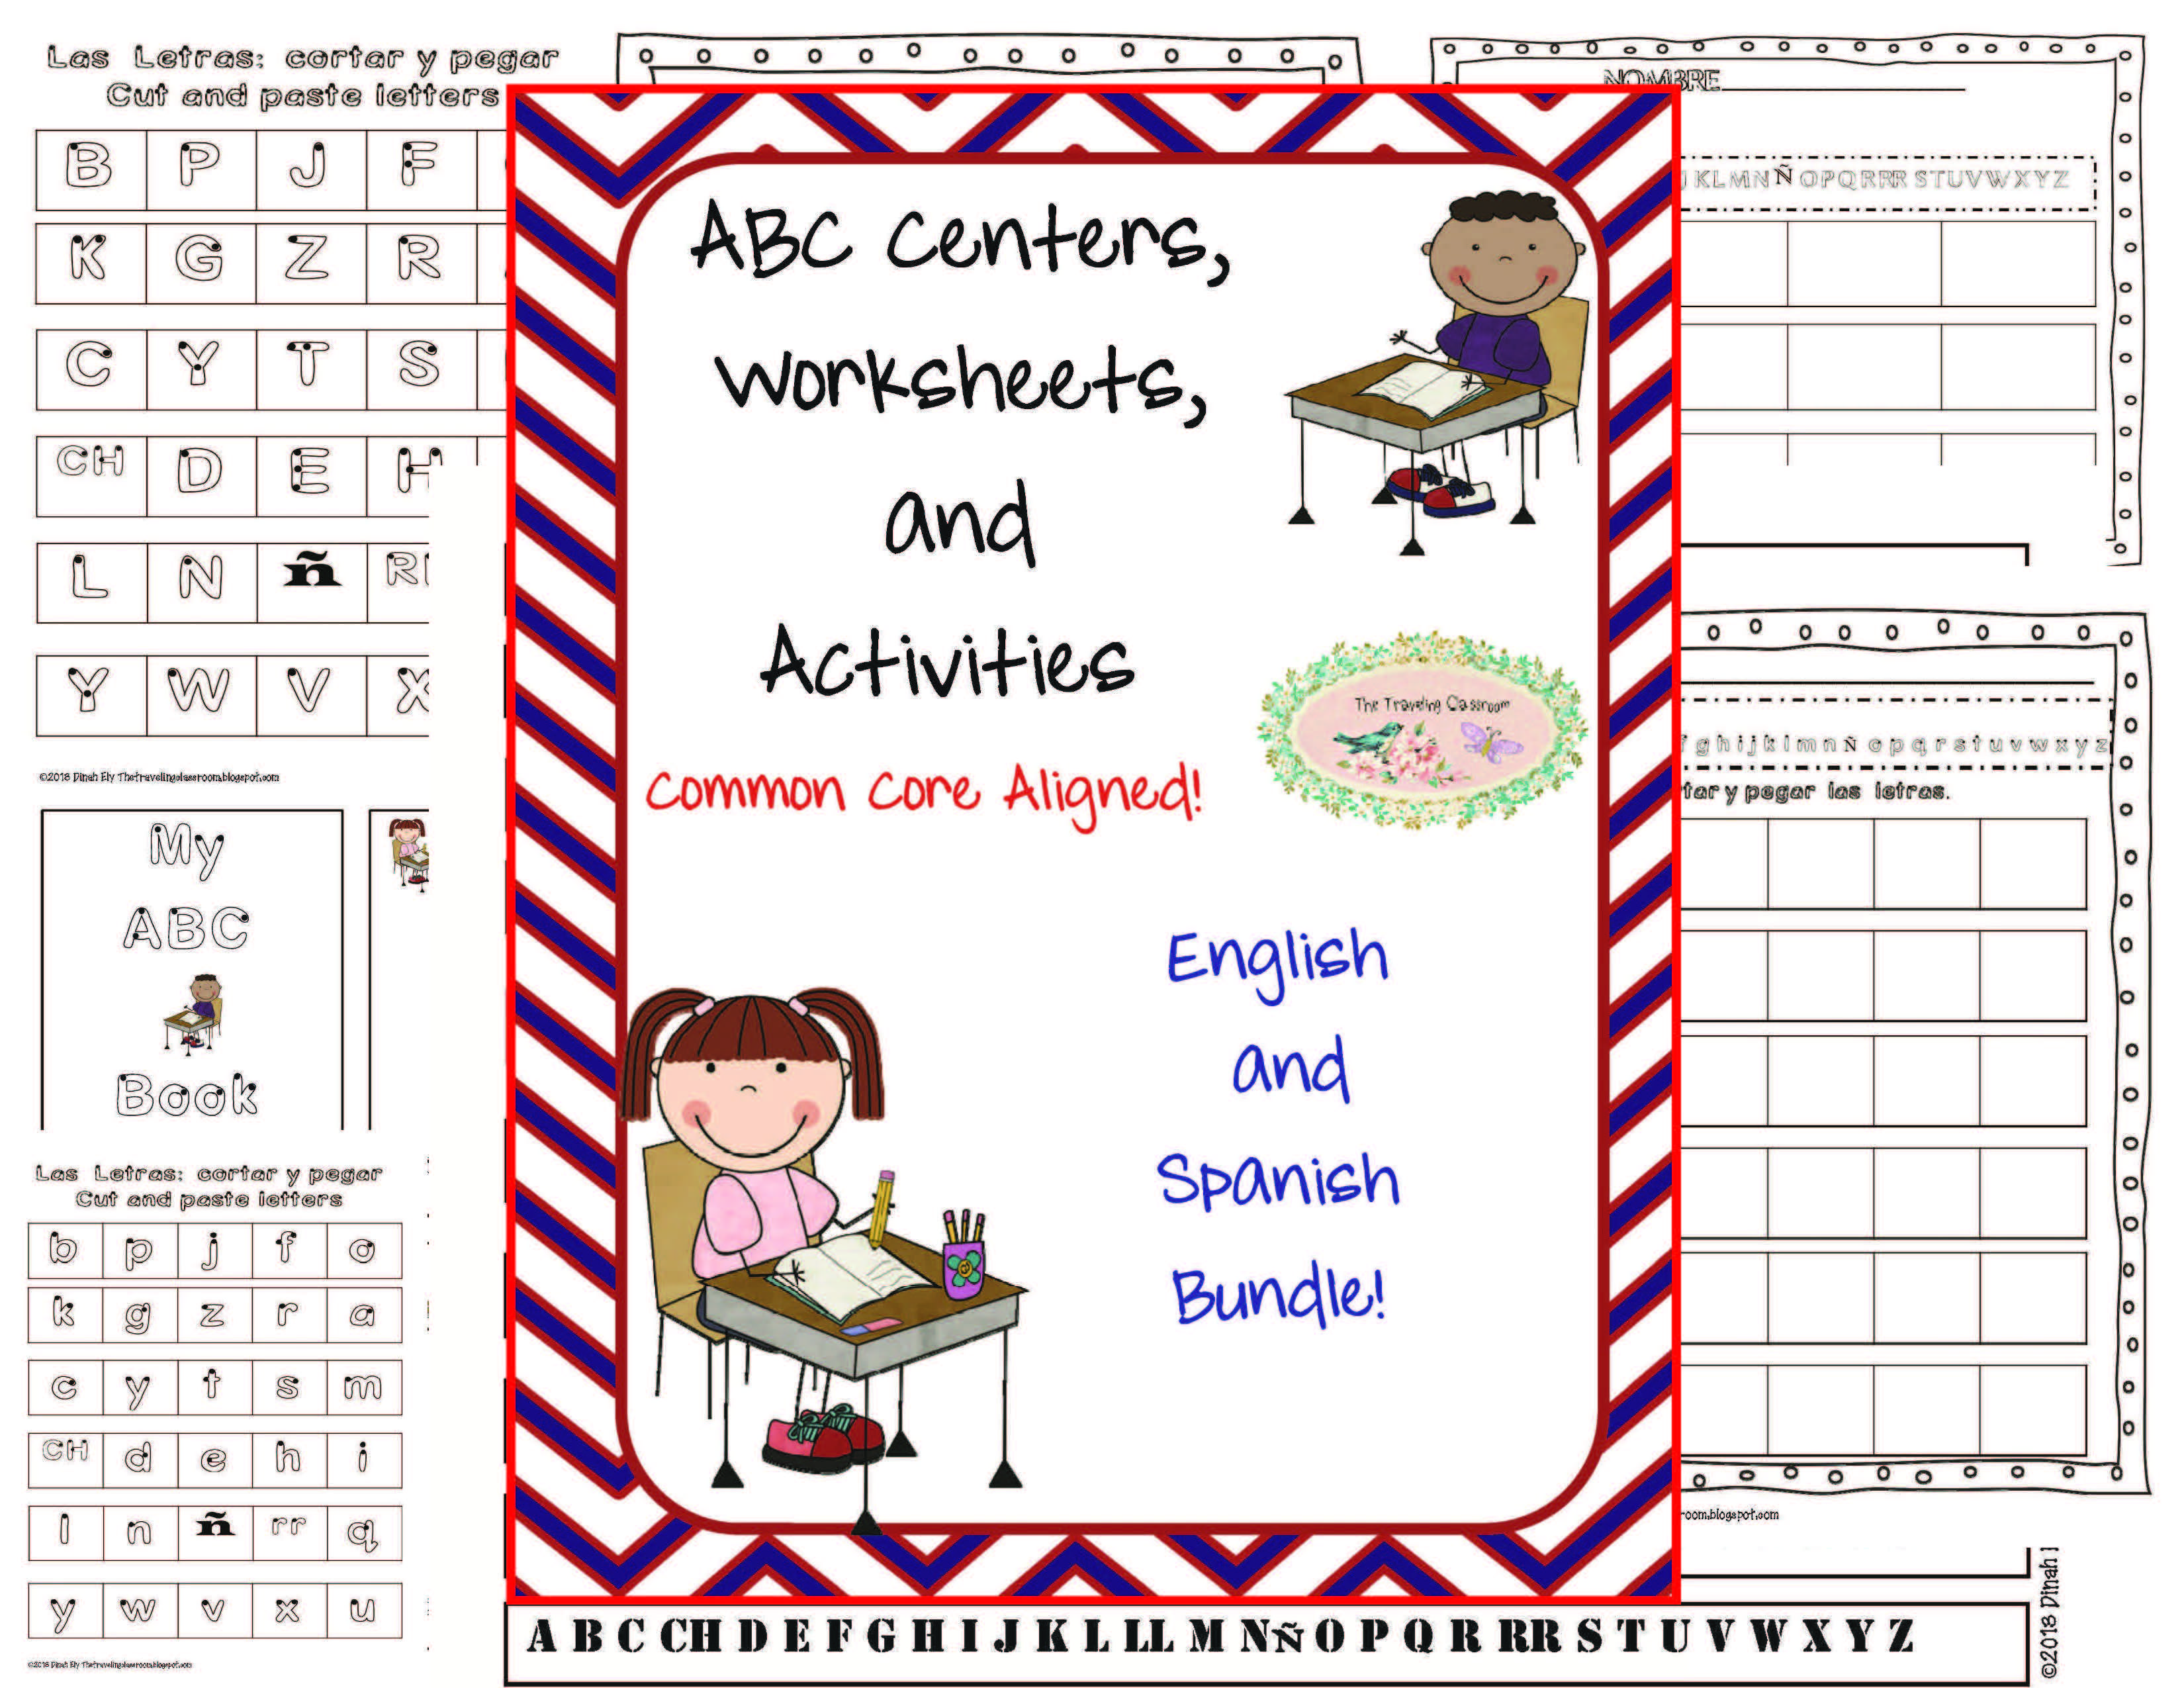 Abc Centers Worksheets Activities Common Core Spanish